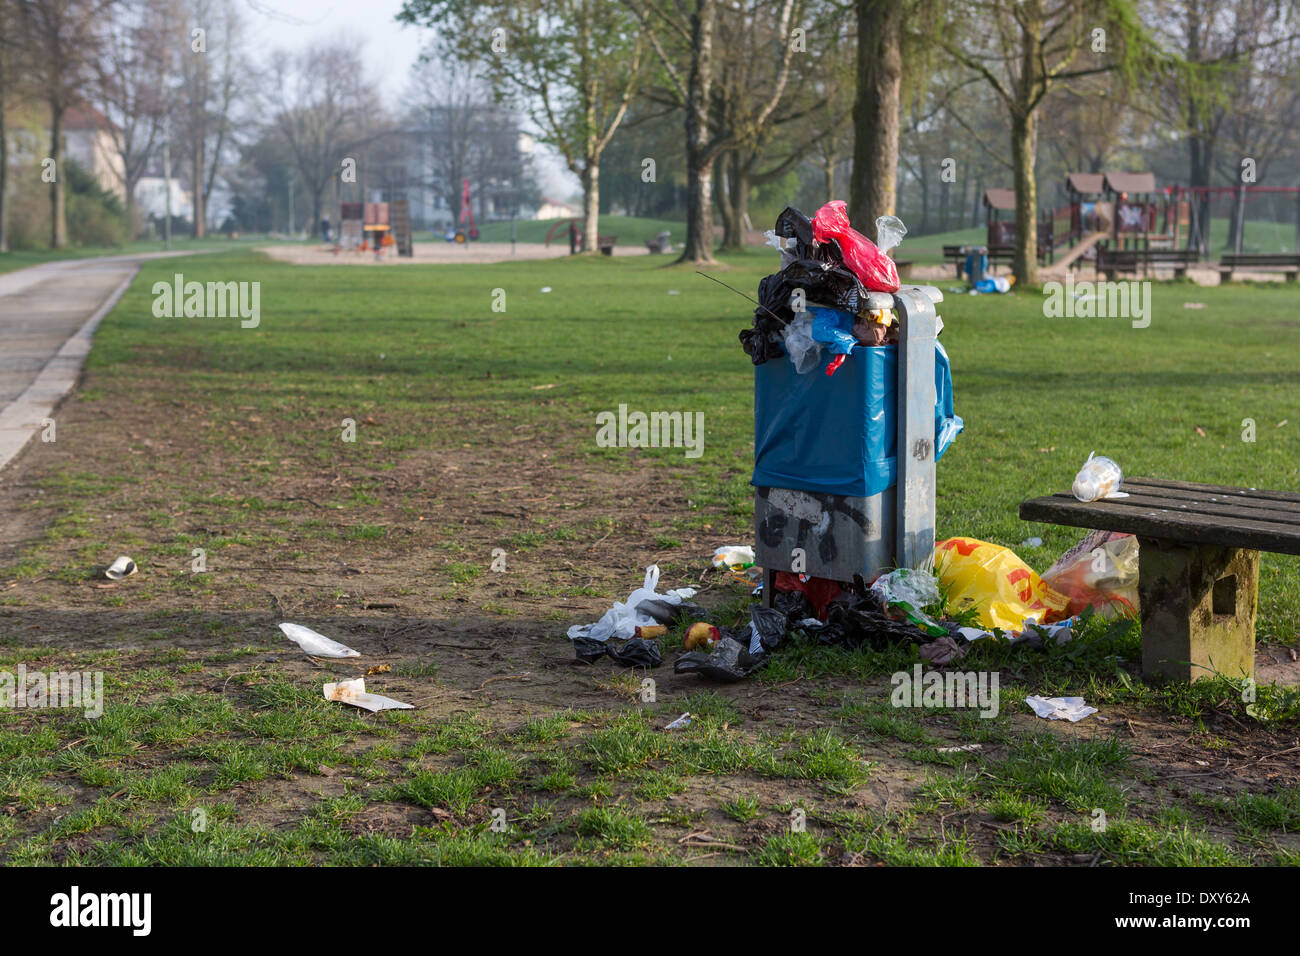 Overflowing rubbish bin in a children's playground - Stock Image